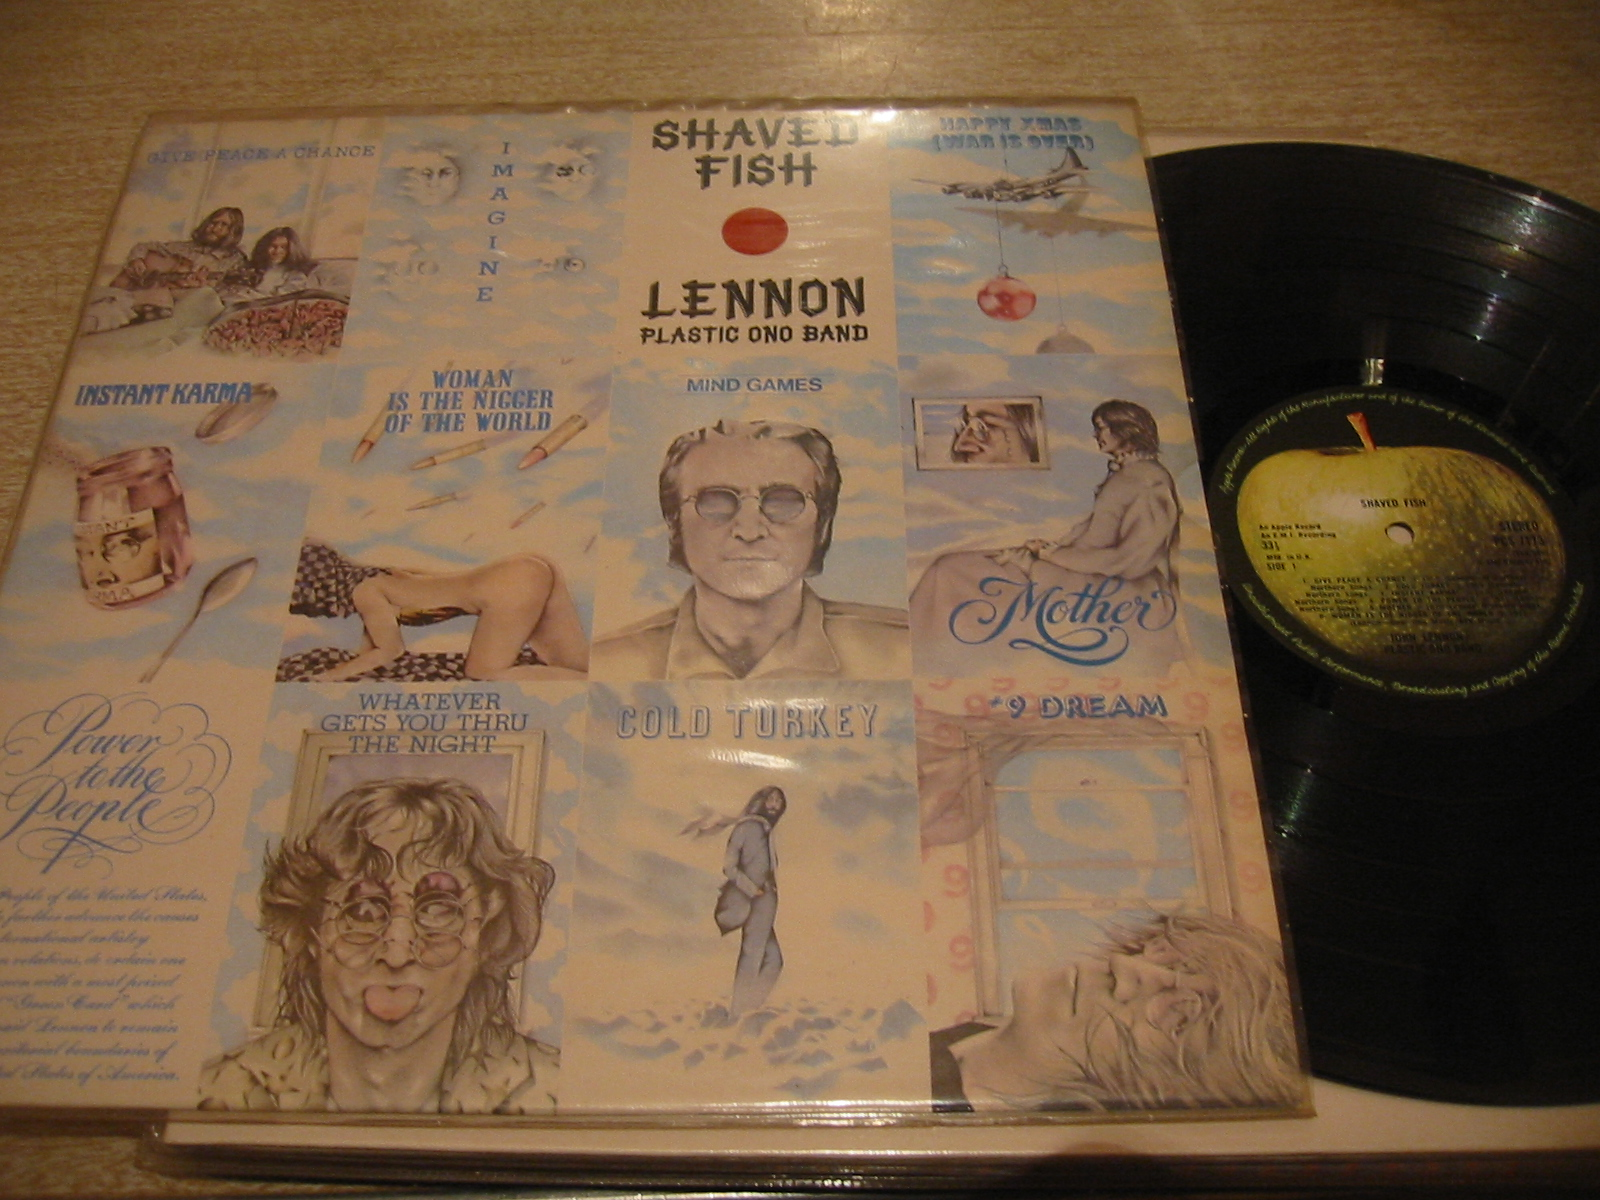 JOHN LENNON - SHAVED FISH - APPLE UK 1975